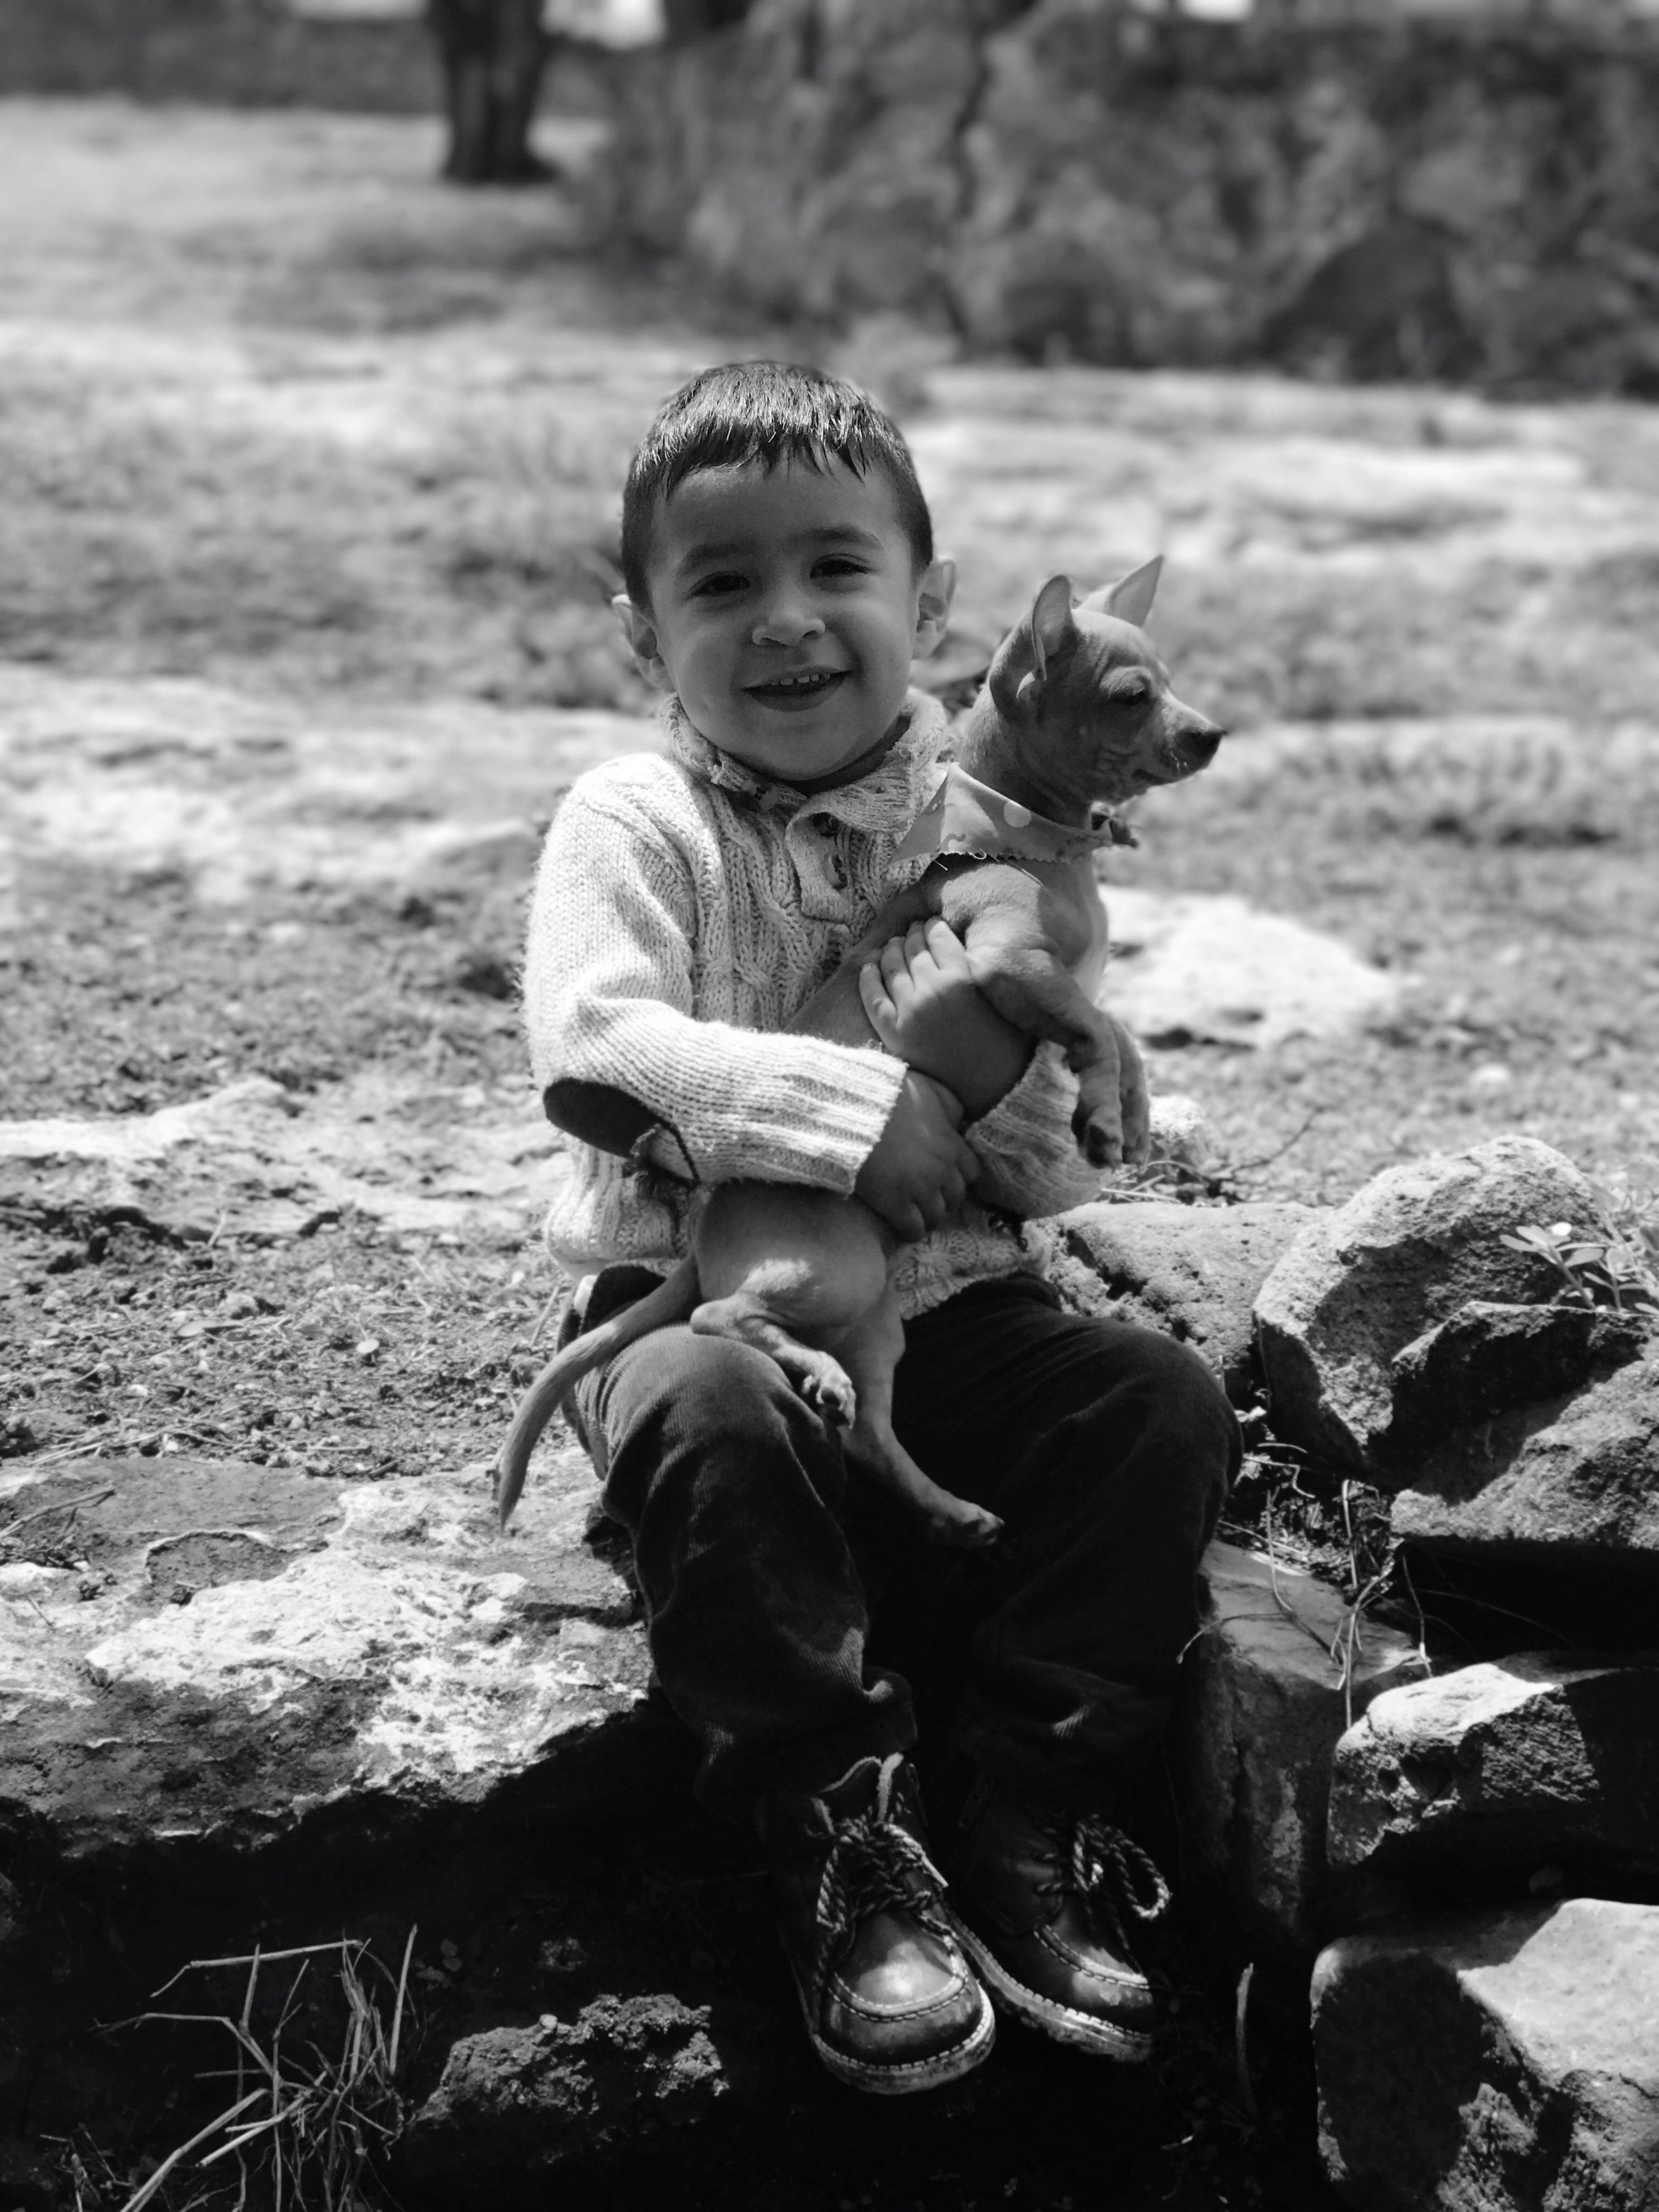 childhood, full length, real people, sitting, happiness, one person, smiling, looking at camera, cute, portrait, outdoors, one animal, front view, casual clothing, boys, animal themes, elementary age, day, field, lifestyles, leisure activity, mammal, pets, domestic animals, nature, young adult, people